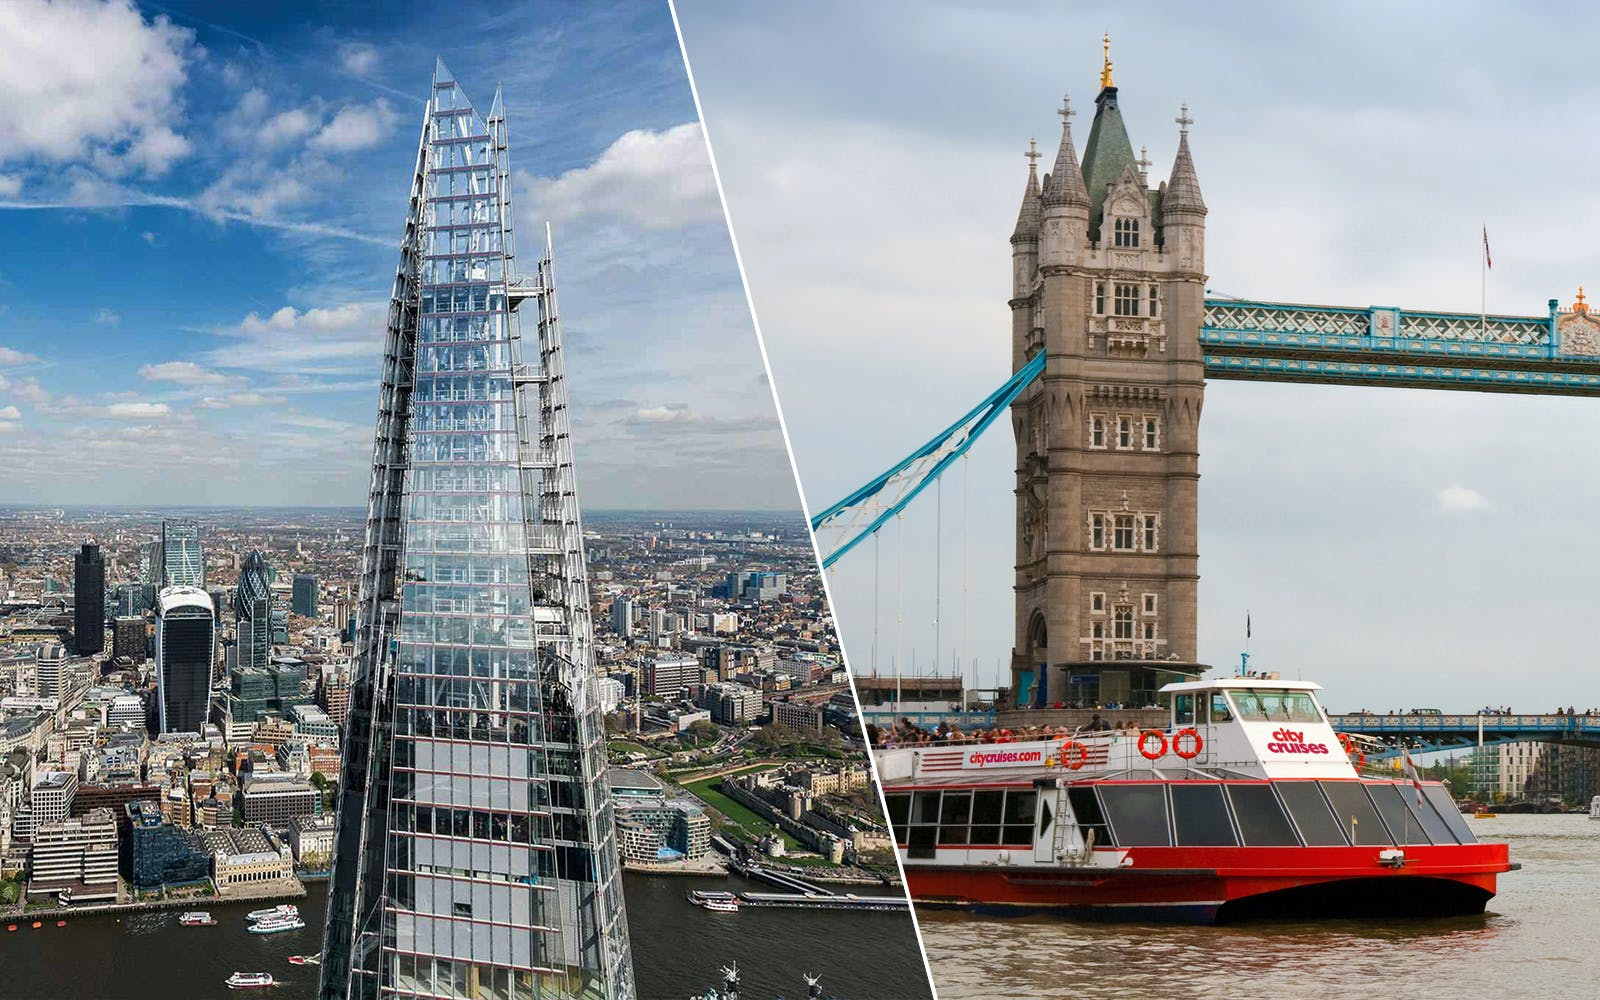 The View From the Shard Tickets and 24 Hours Thames River Cruise Combo